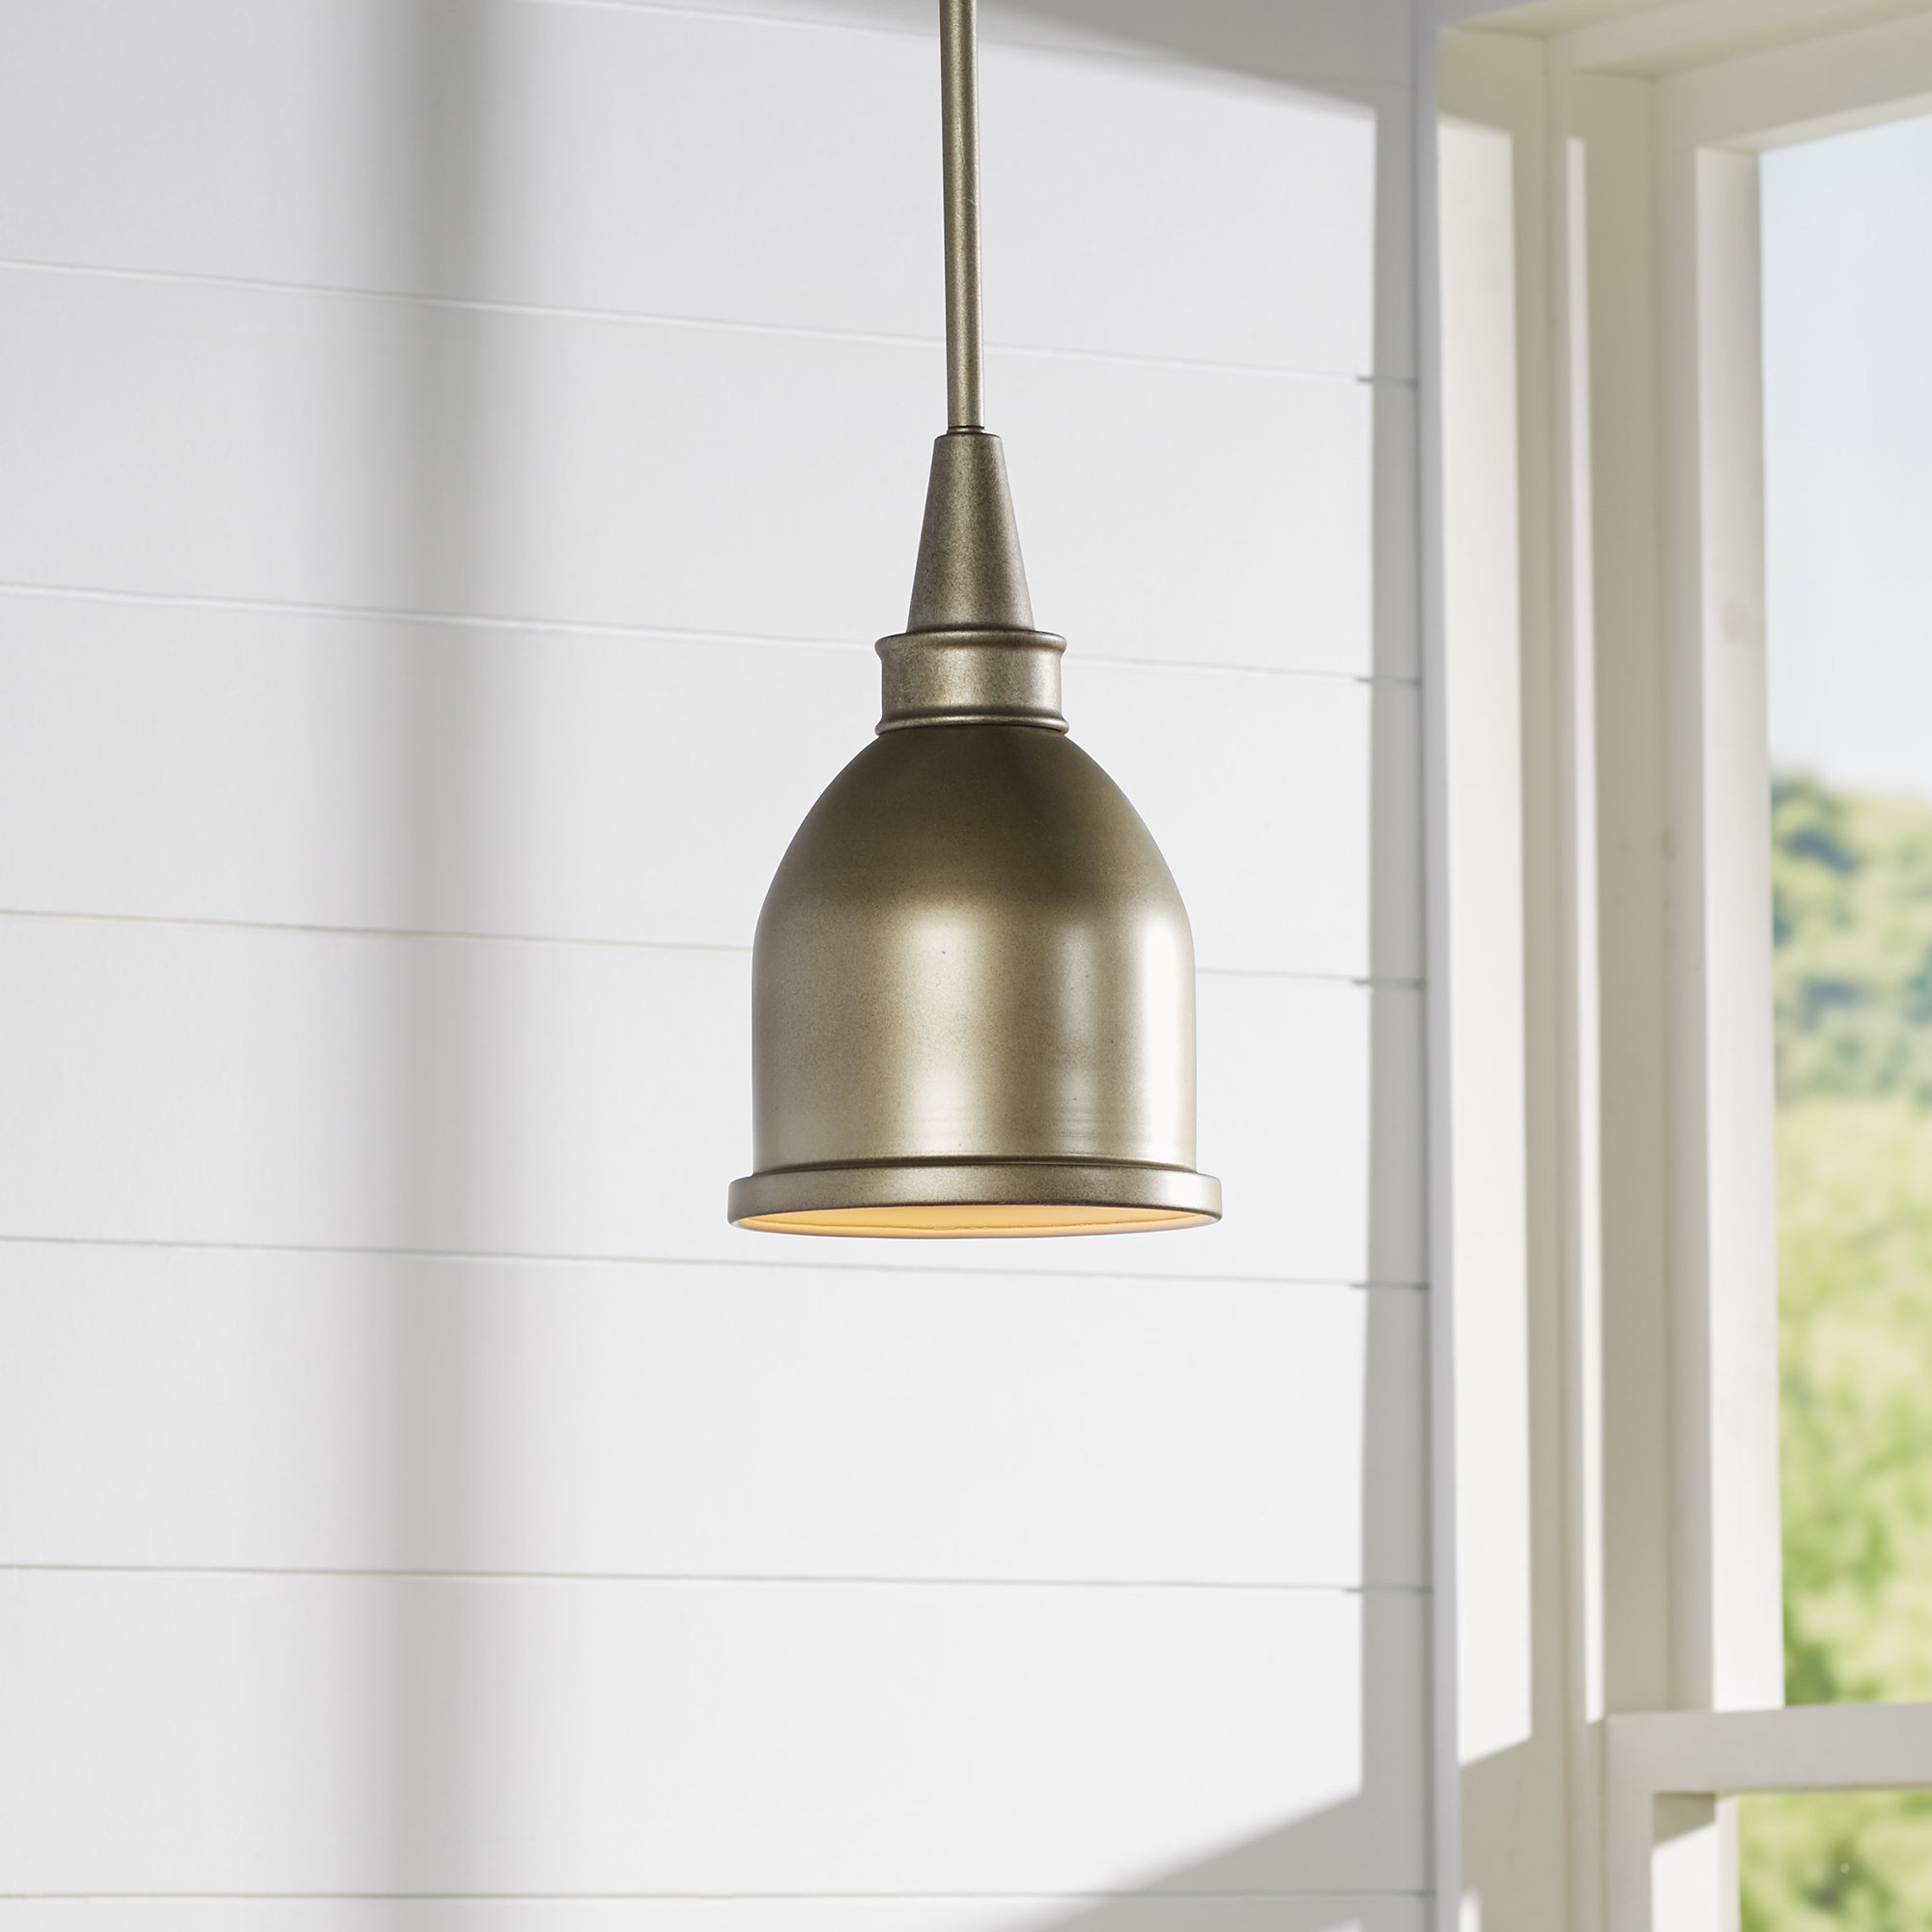 Widely Used Manston 1 Light Single Bell Pendant Intended For Erico 1 Light Single Bell Pendants (View 11 of 20)